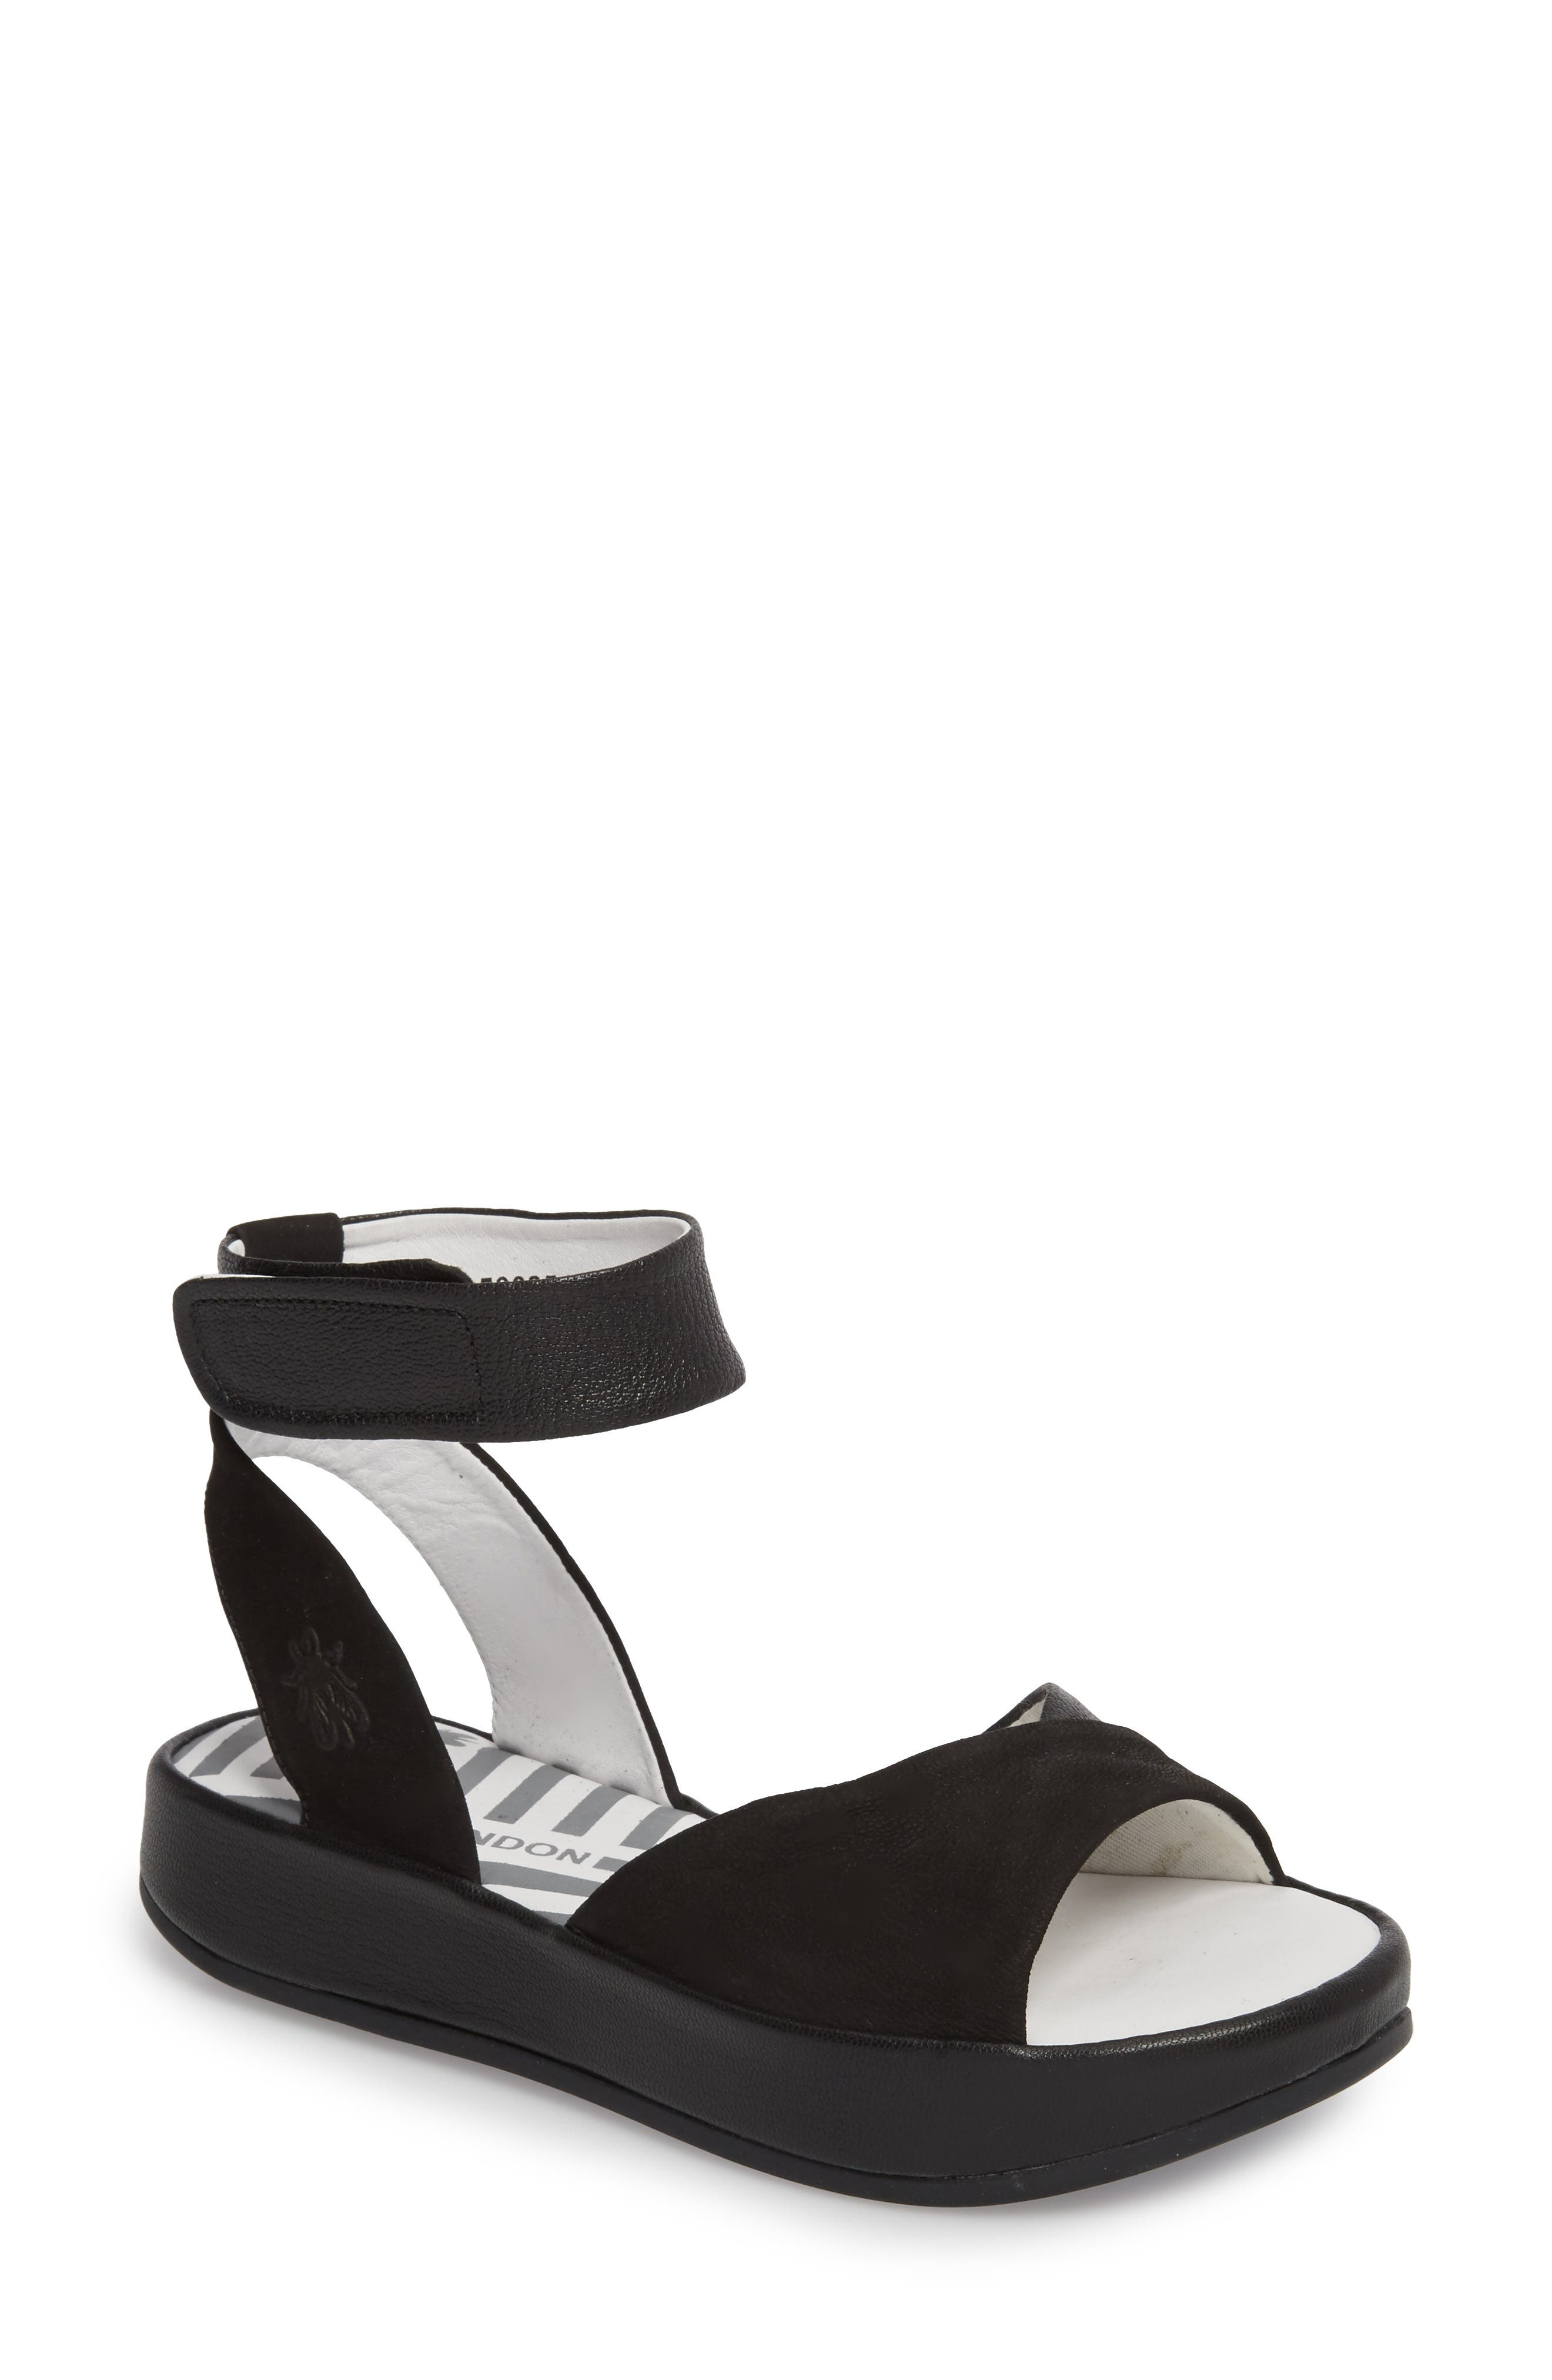 Bibb Sandal,                         Main,                         color, BLACK MIX LEATHER